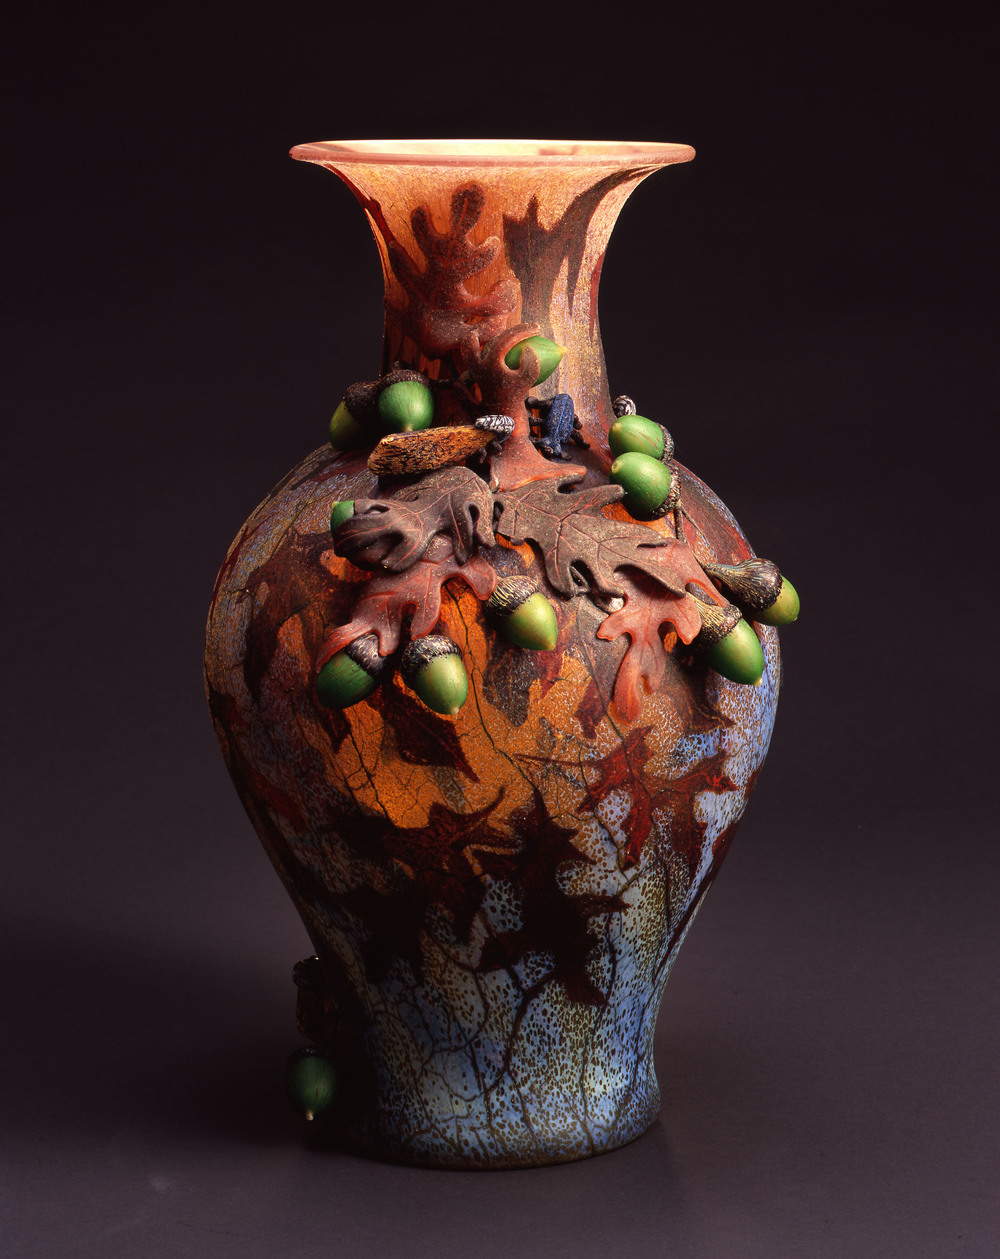 William Morris,  Vase with Oak Leaves, Acorns and Moth    (2004, glass, 15 11/16 x 9 1/4 x 8 3/4 inches), WM.47